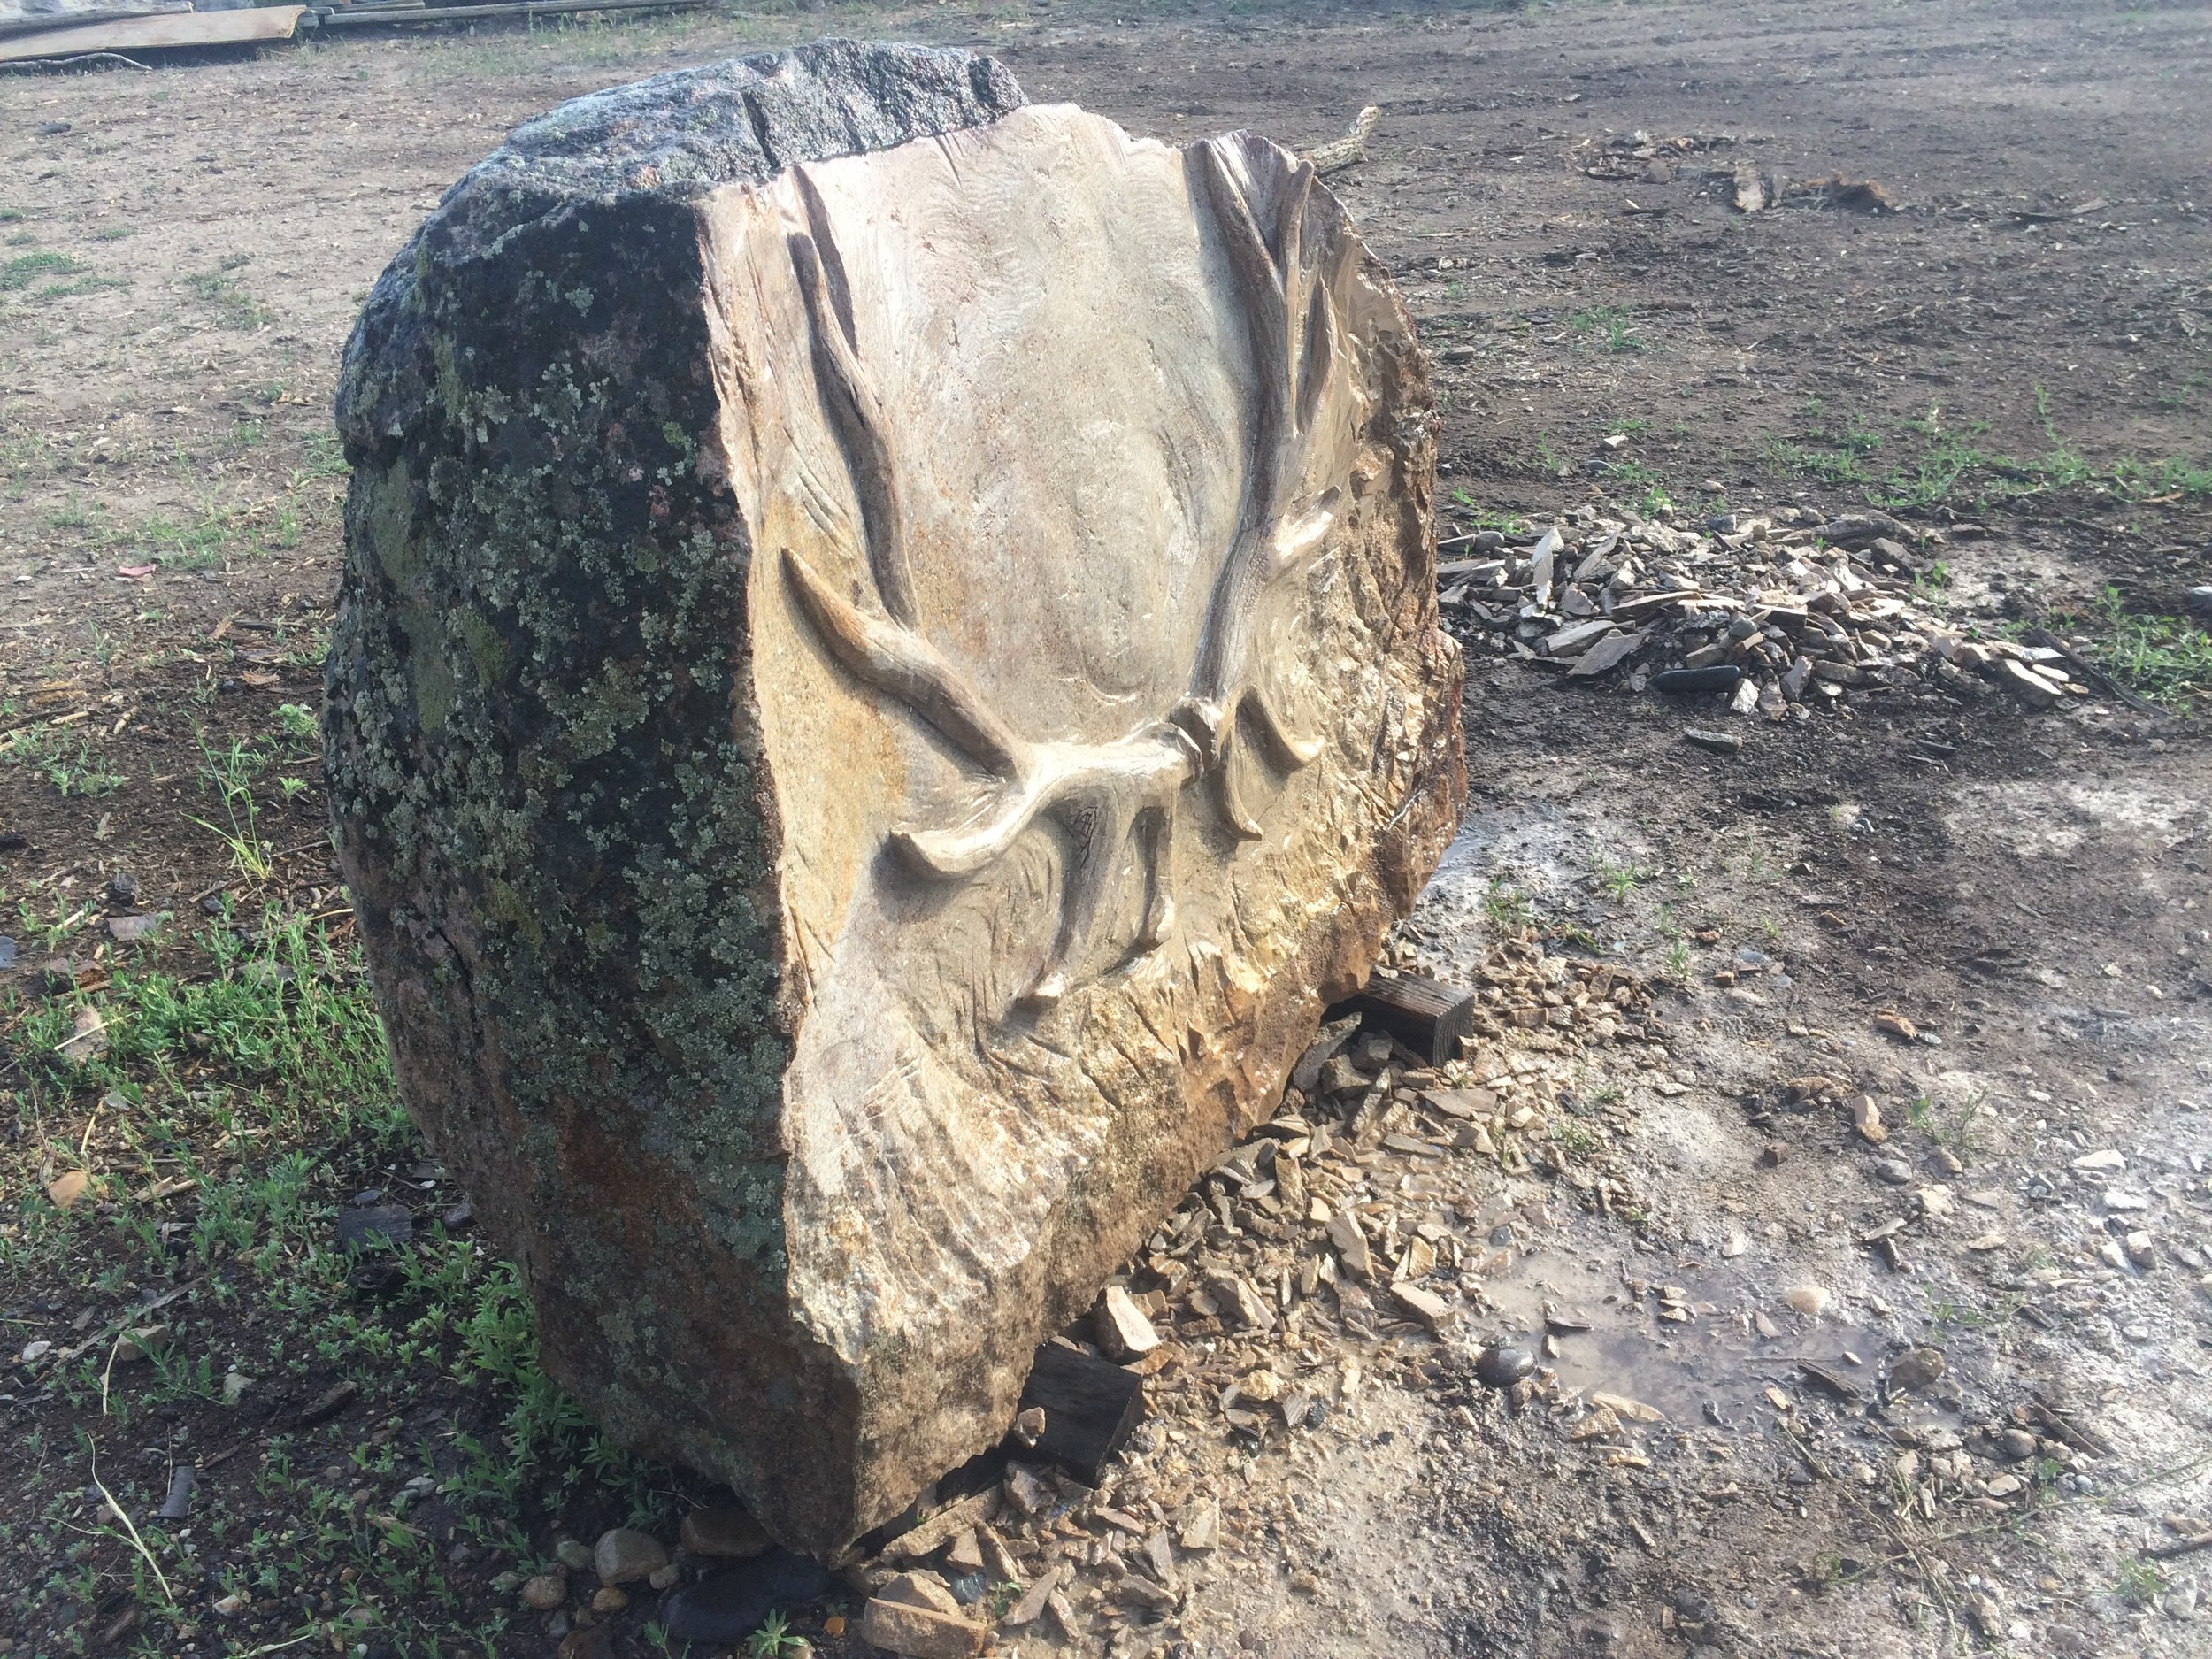 CHris sculpted an elk rack out of this beautiful sandstone / granite rock for a client's family memorial headstone.